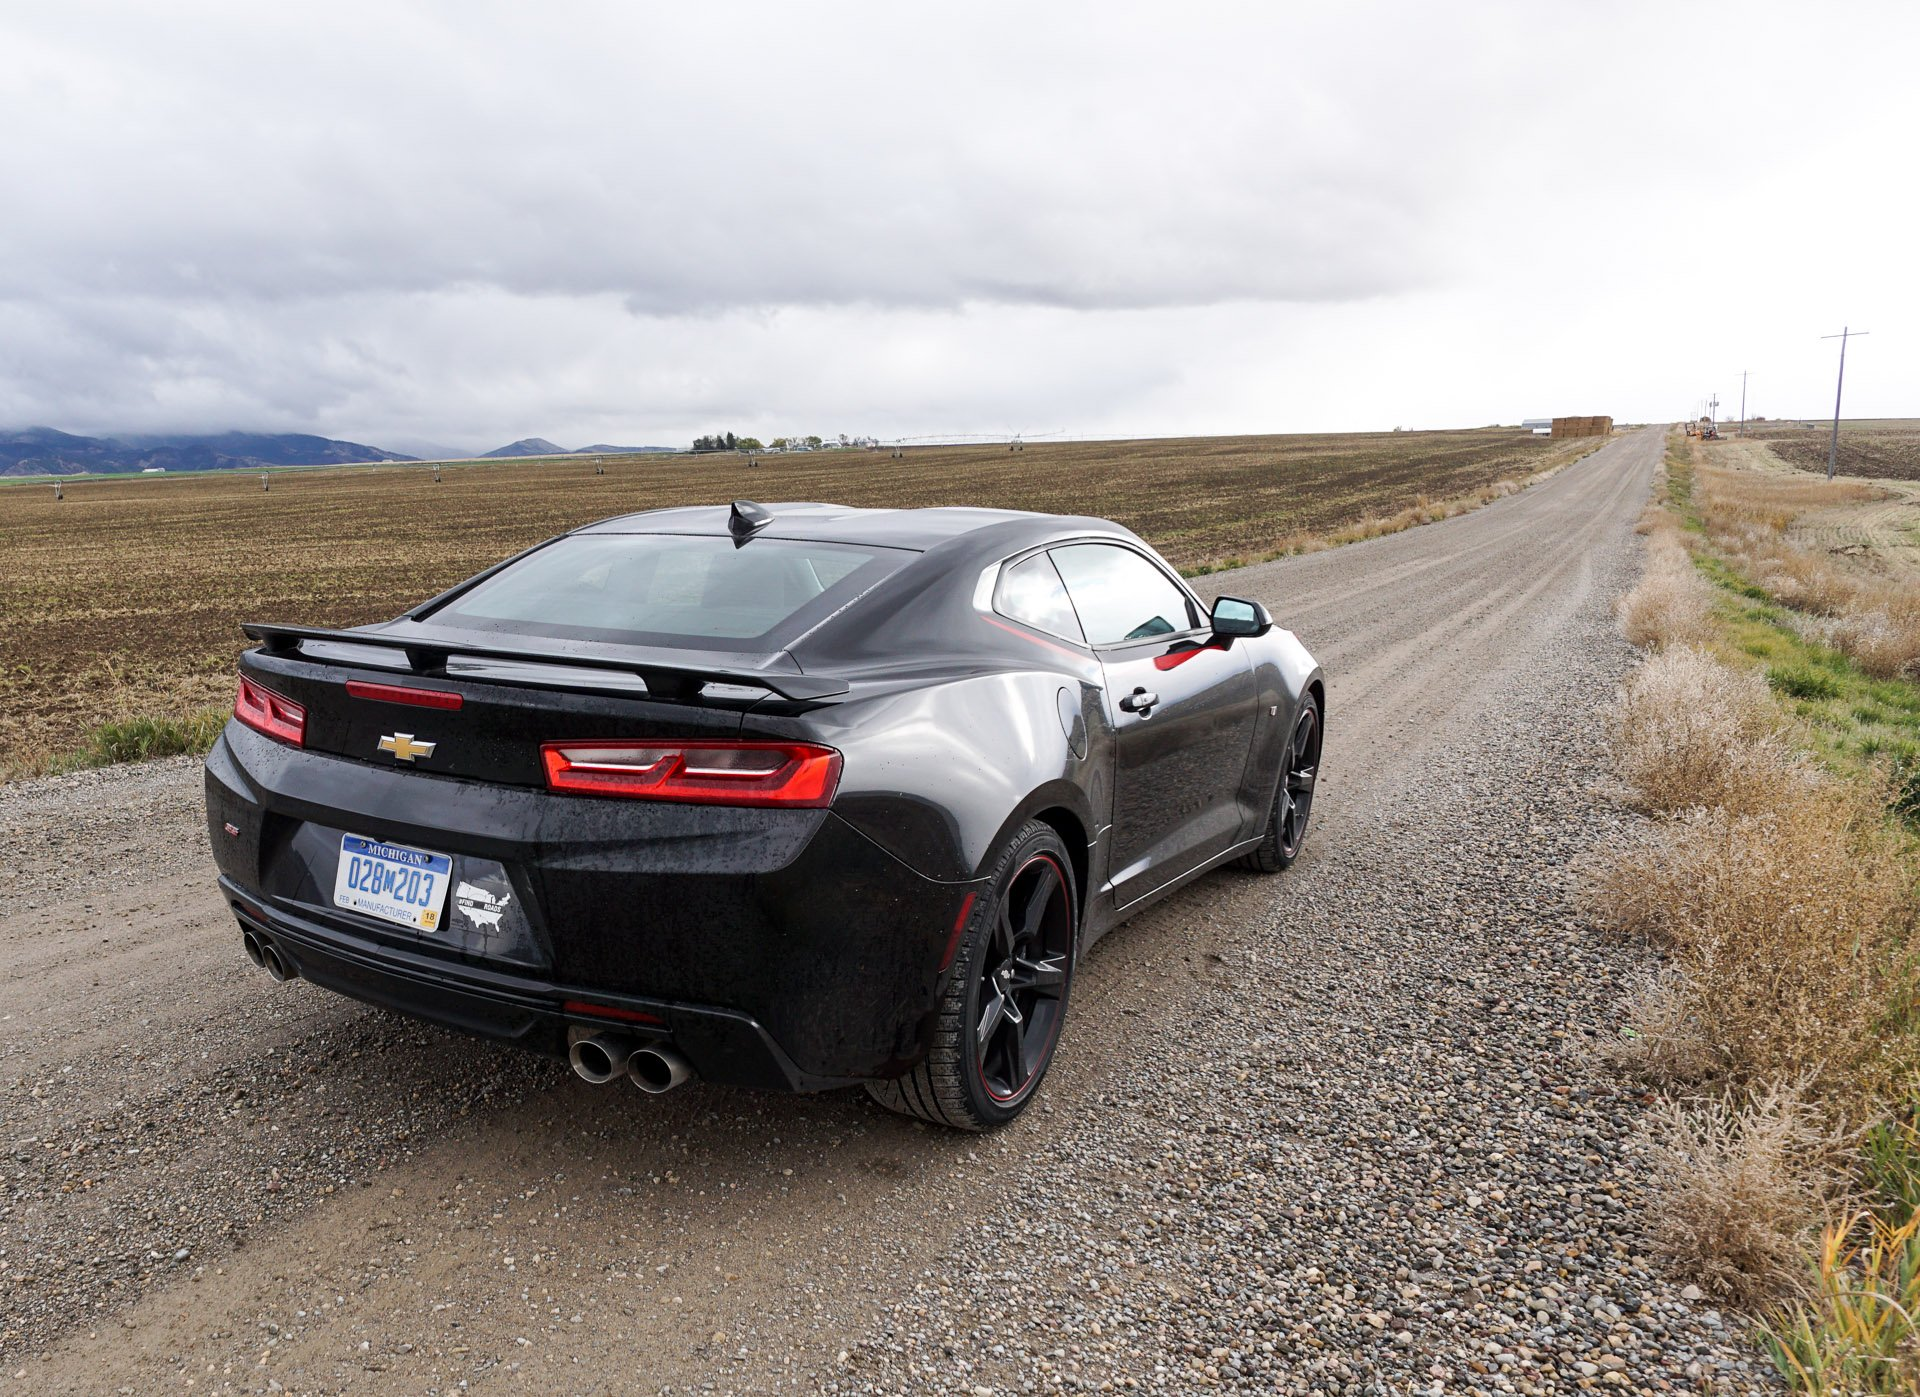 Our Awesome Camaro Road Trip